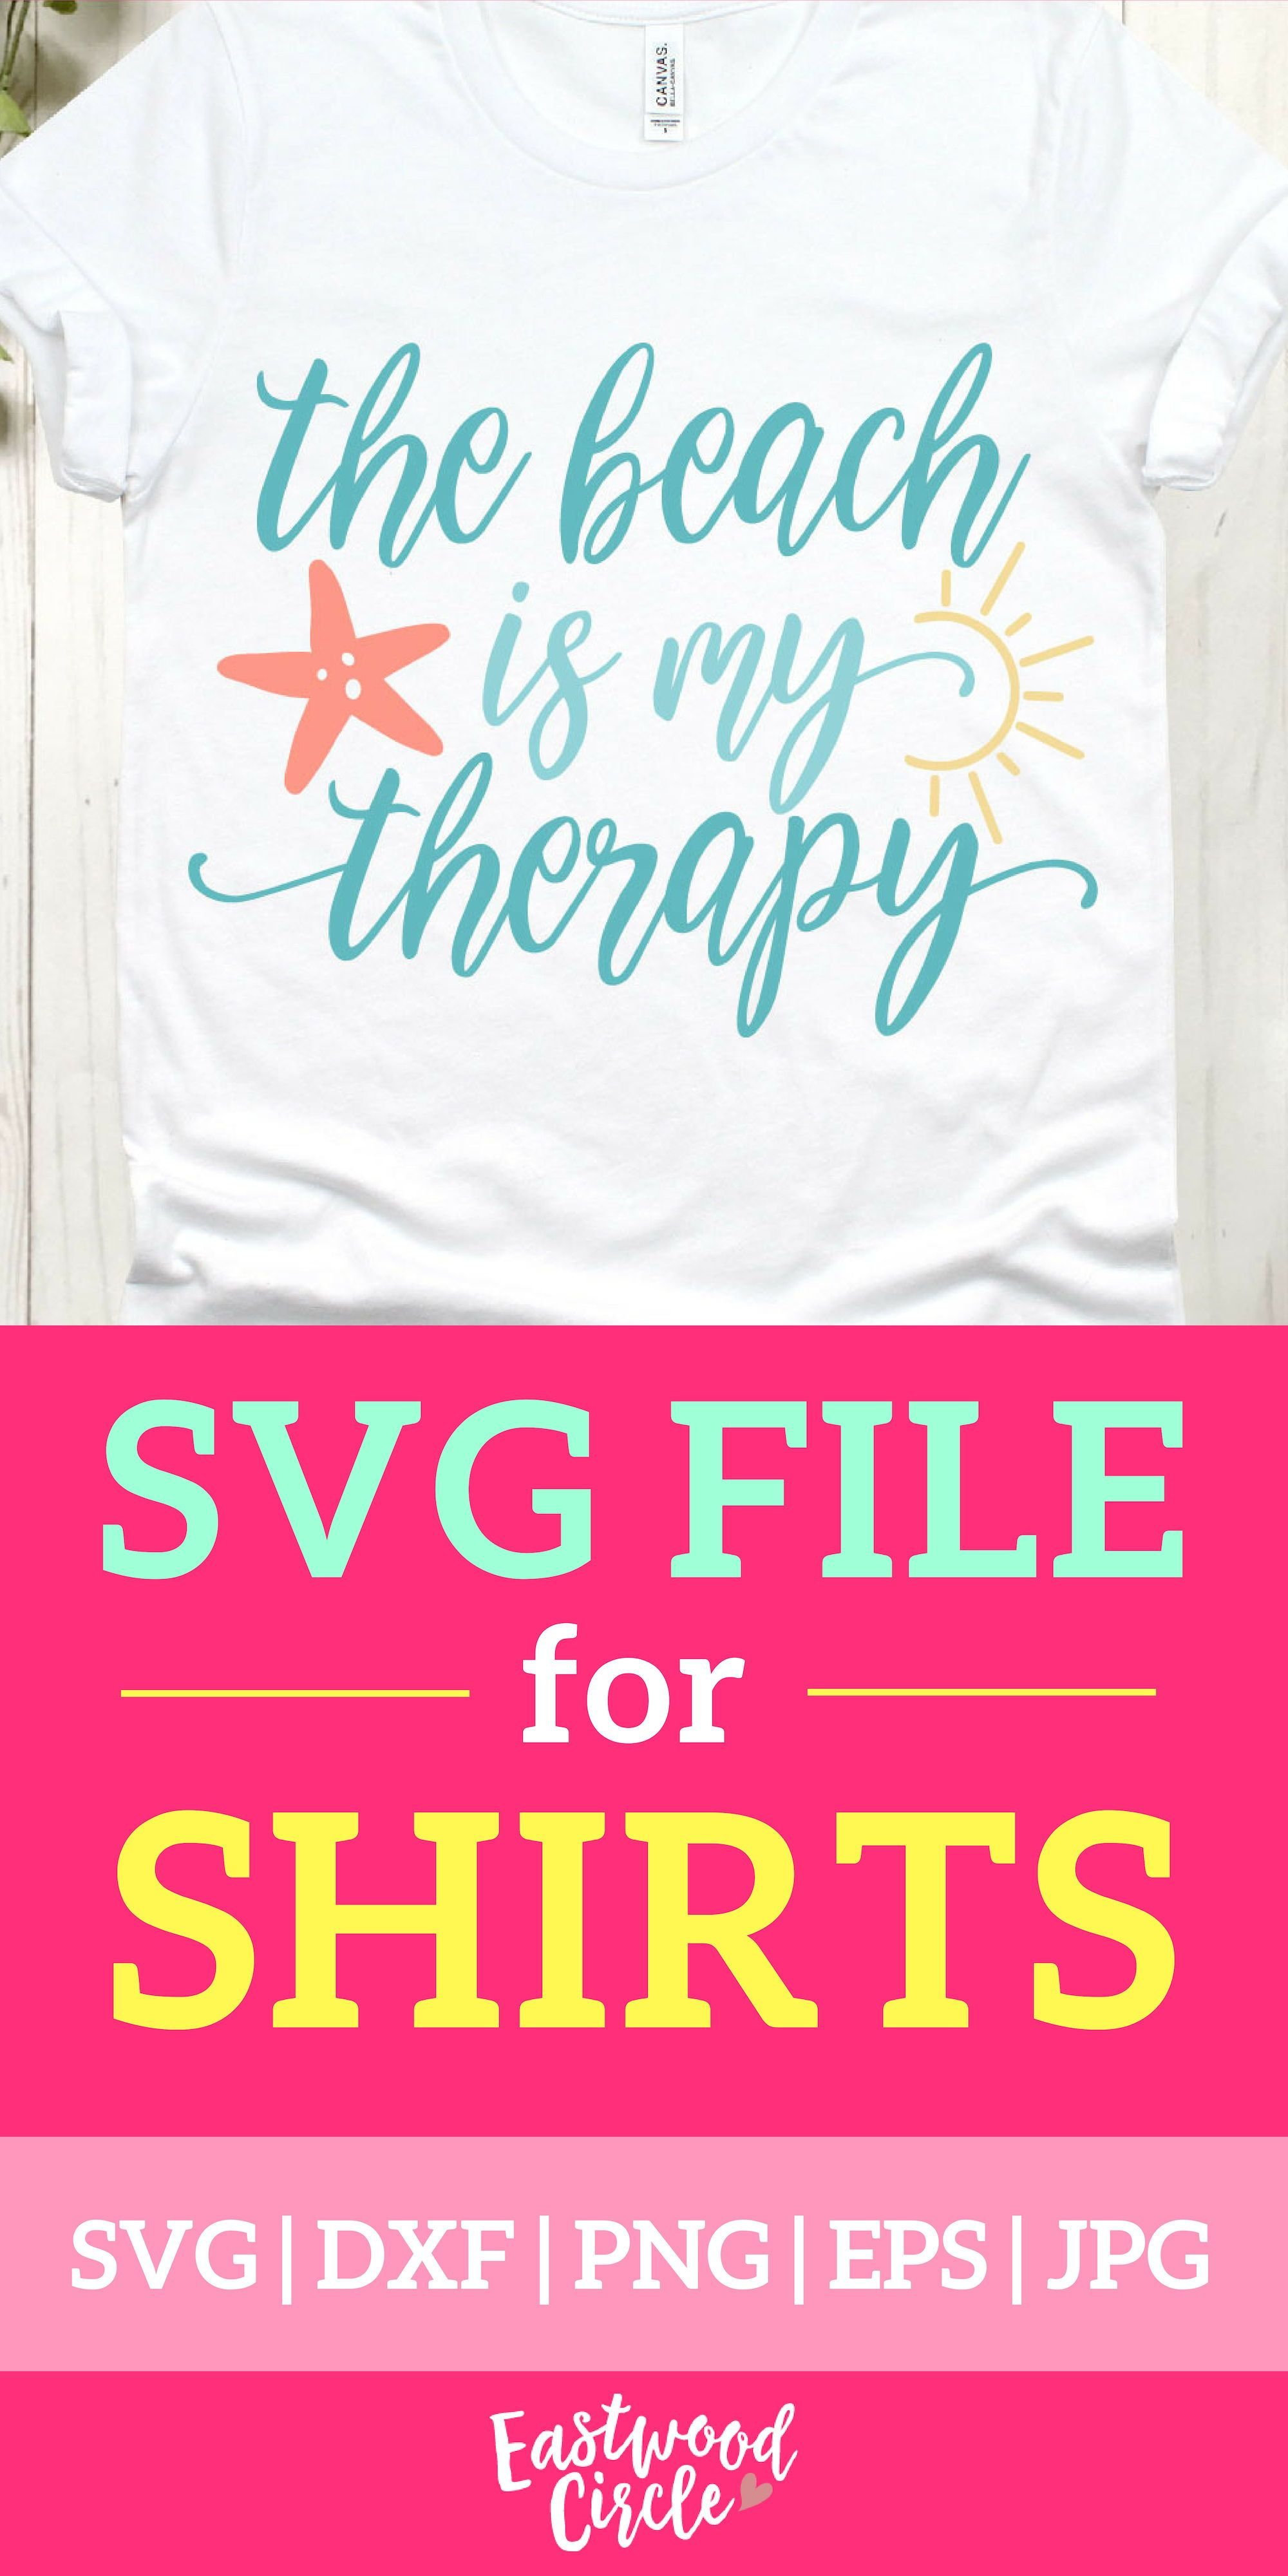 The Beach Is My Therapy svg, Beach svg, Beach svg Files for